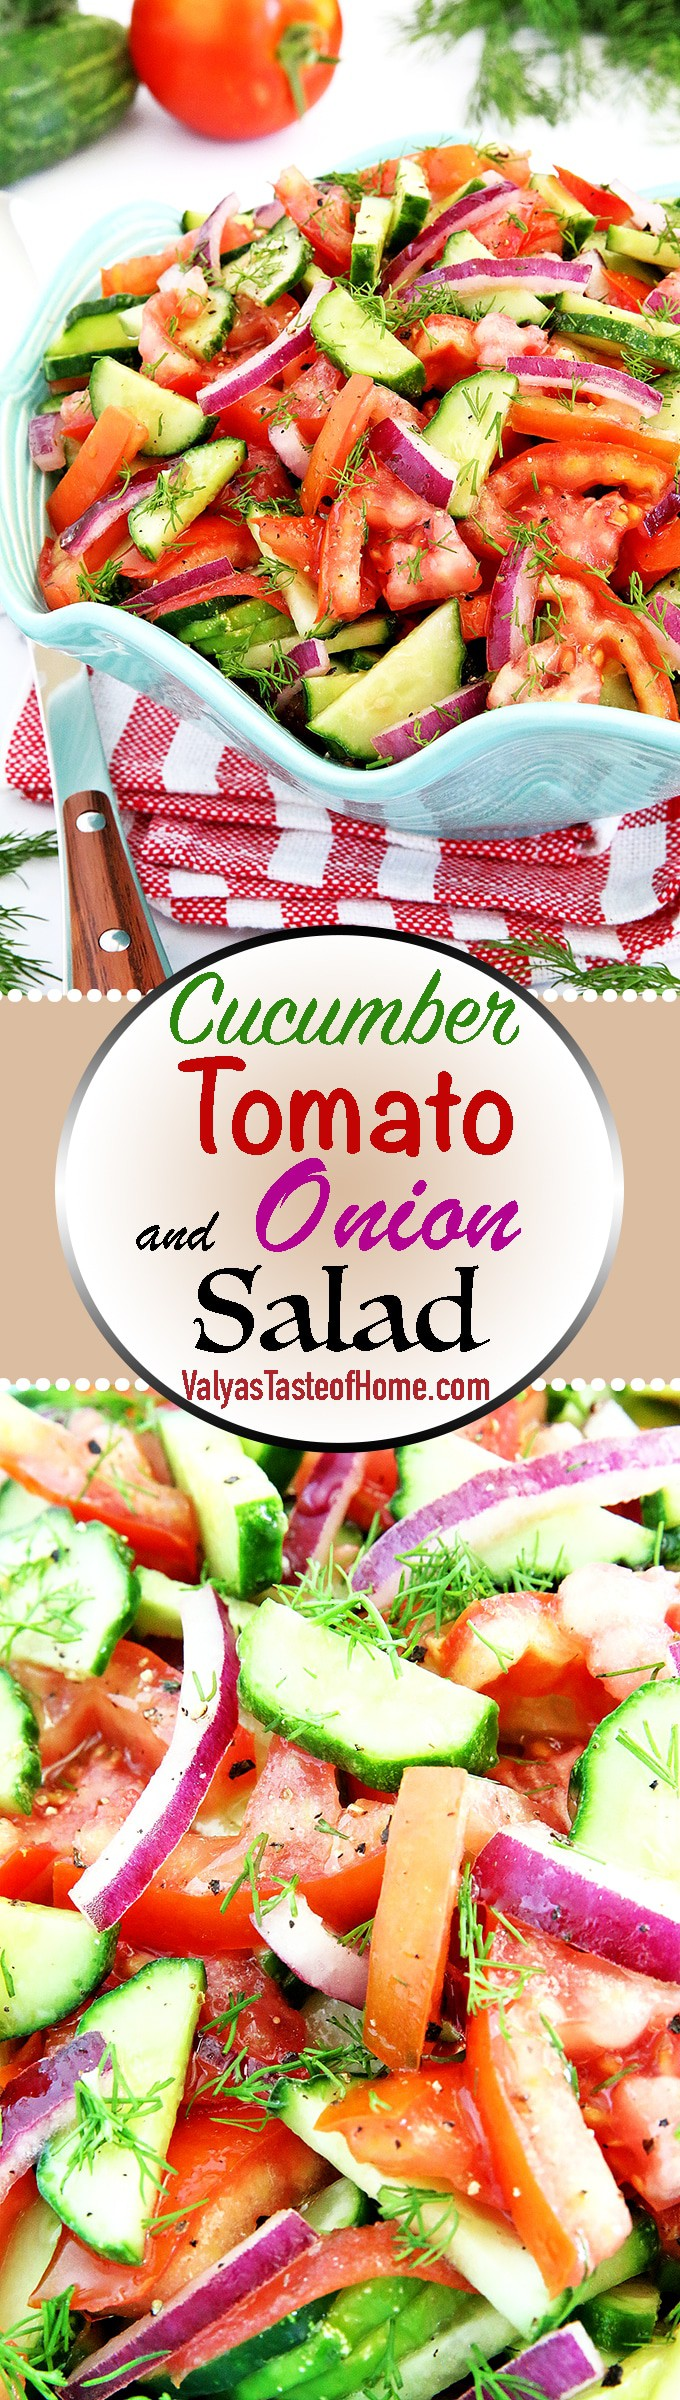 We have this Cucumber Tomato and Onion Salad Recipe most frequently during the summertime not only because these particular veggies grow in abundance but incredibly quick and so simple to produce. #homegrownproduce #freshvegetables #organiclygrown #valyastasteofhome